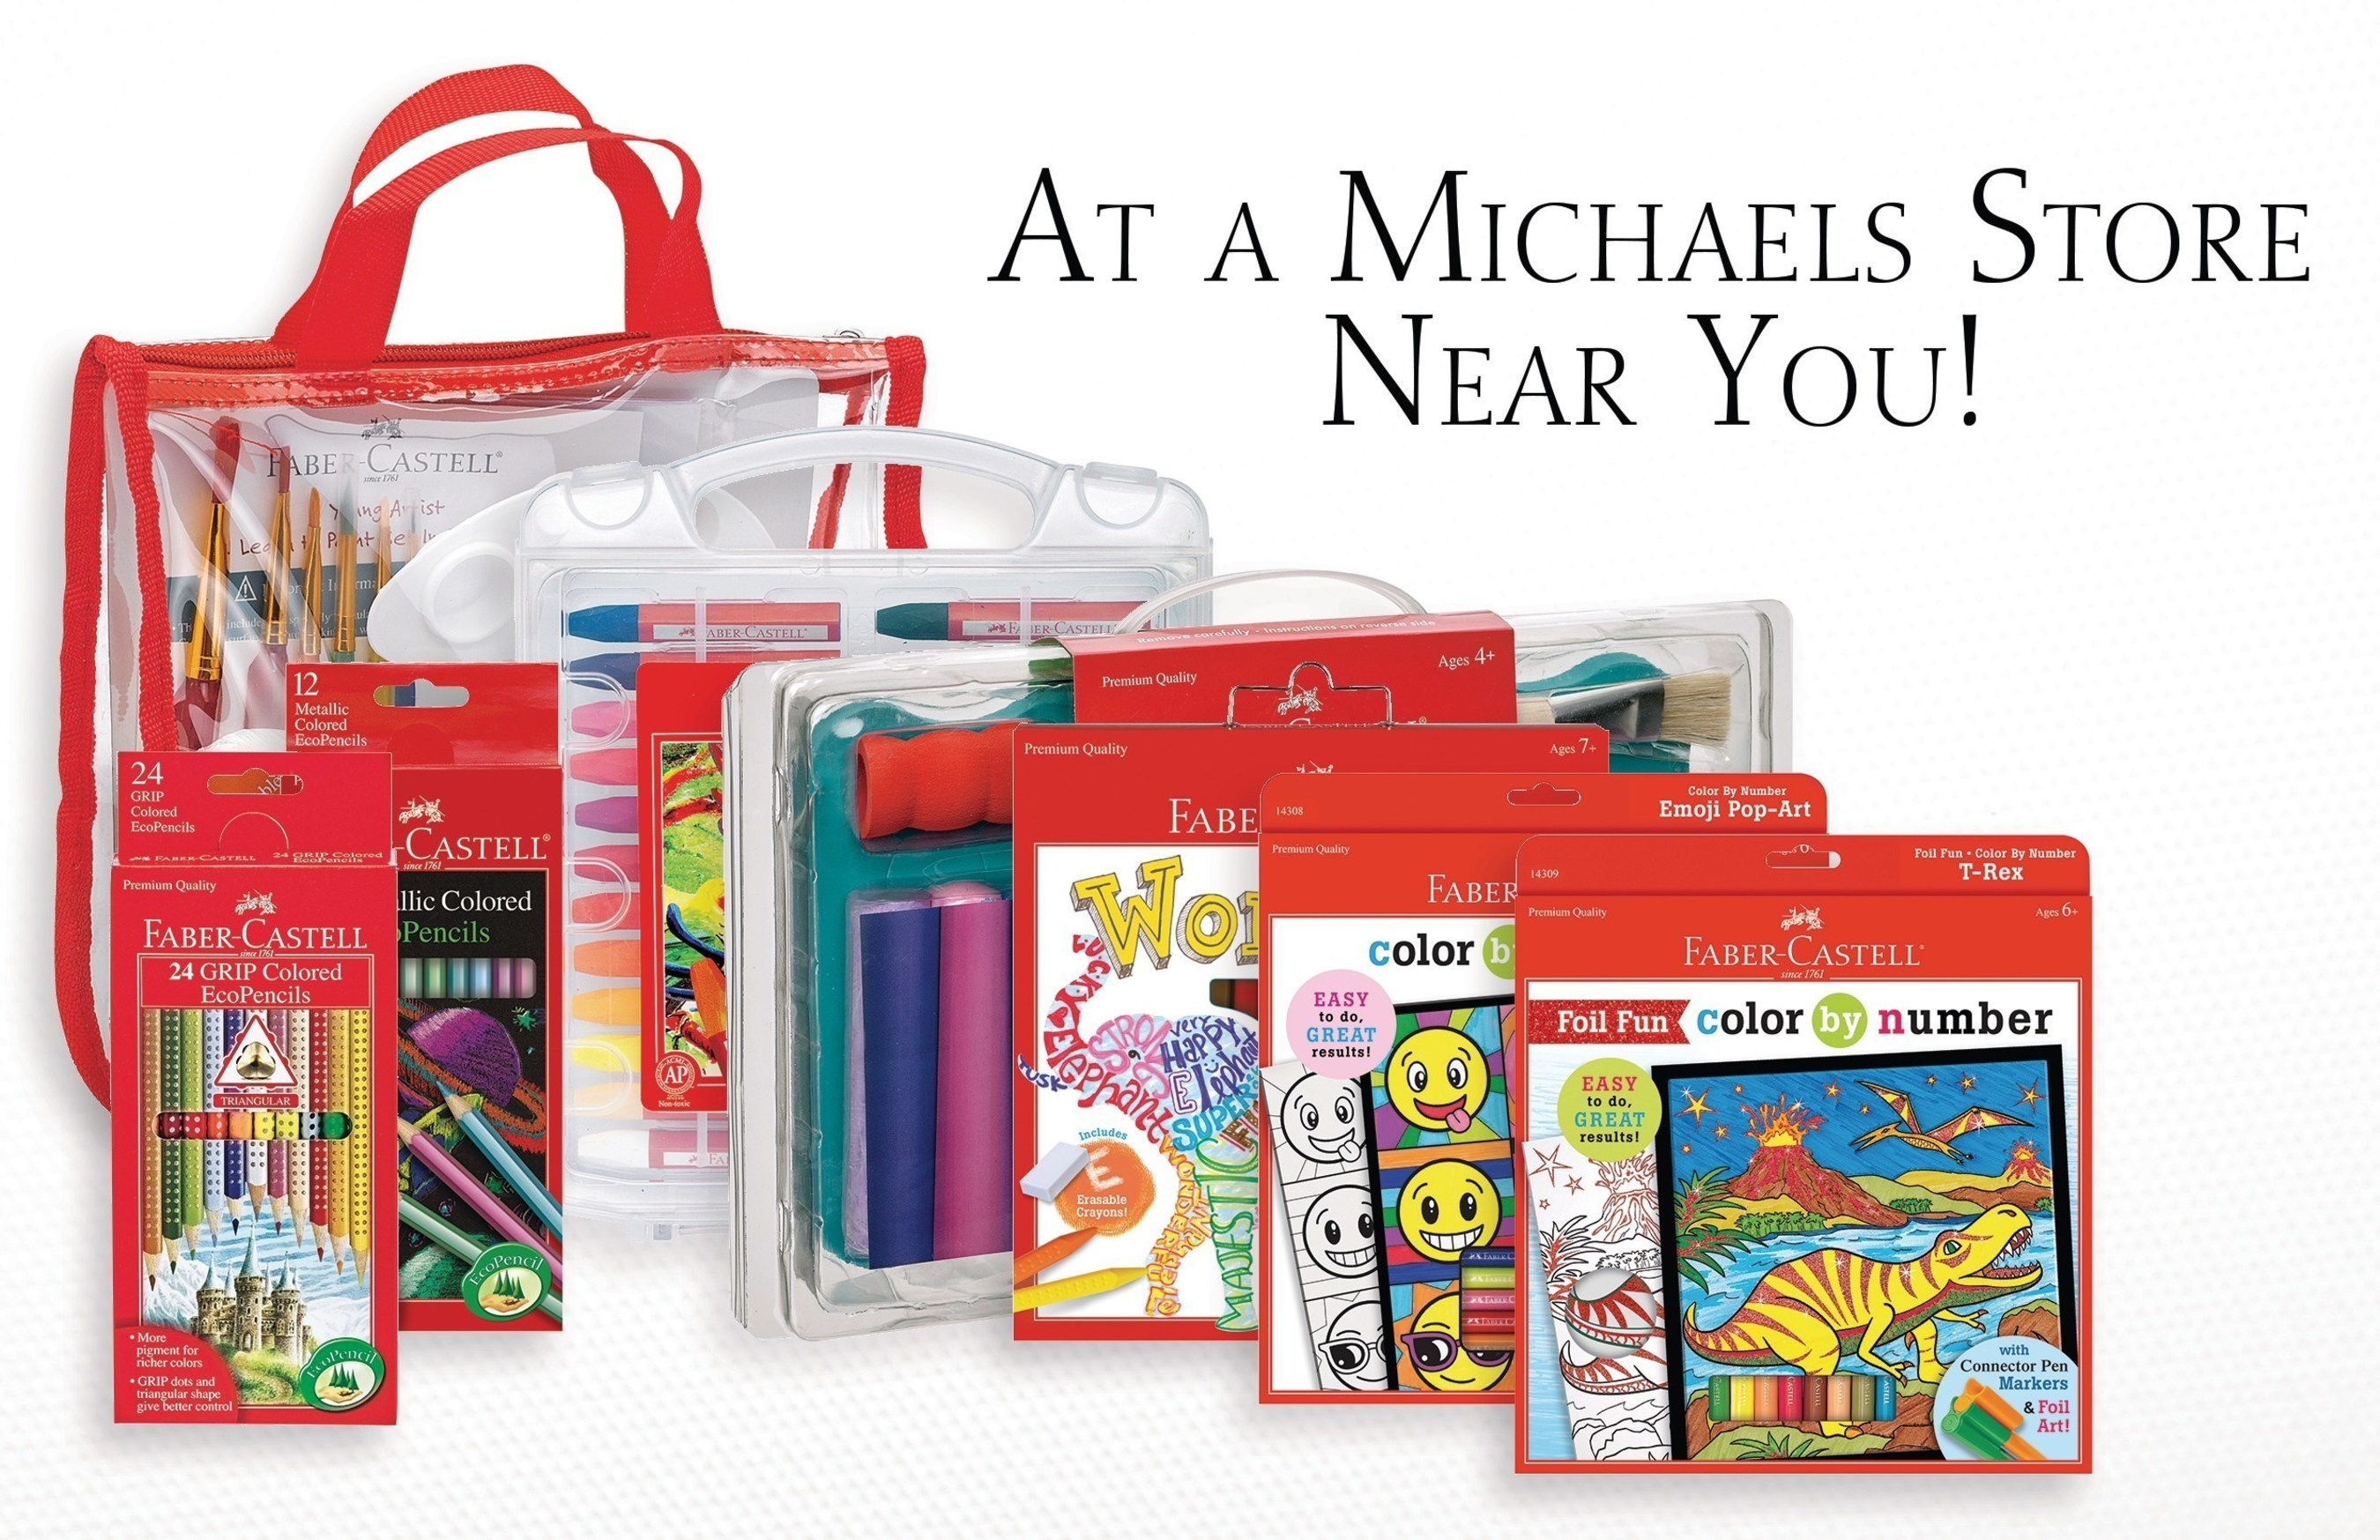 Faber-Castell Premium Children's Art Products are now available at Michaels stores, featuring new products like Do Art Word Art and Color by Number Emoji Pop-Art.